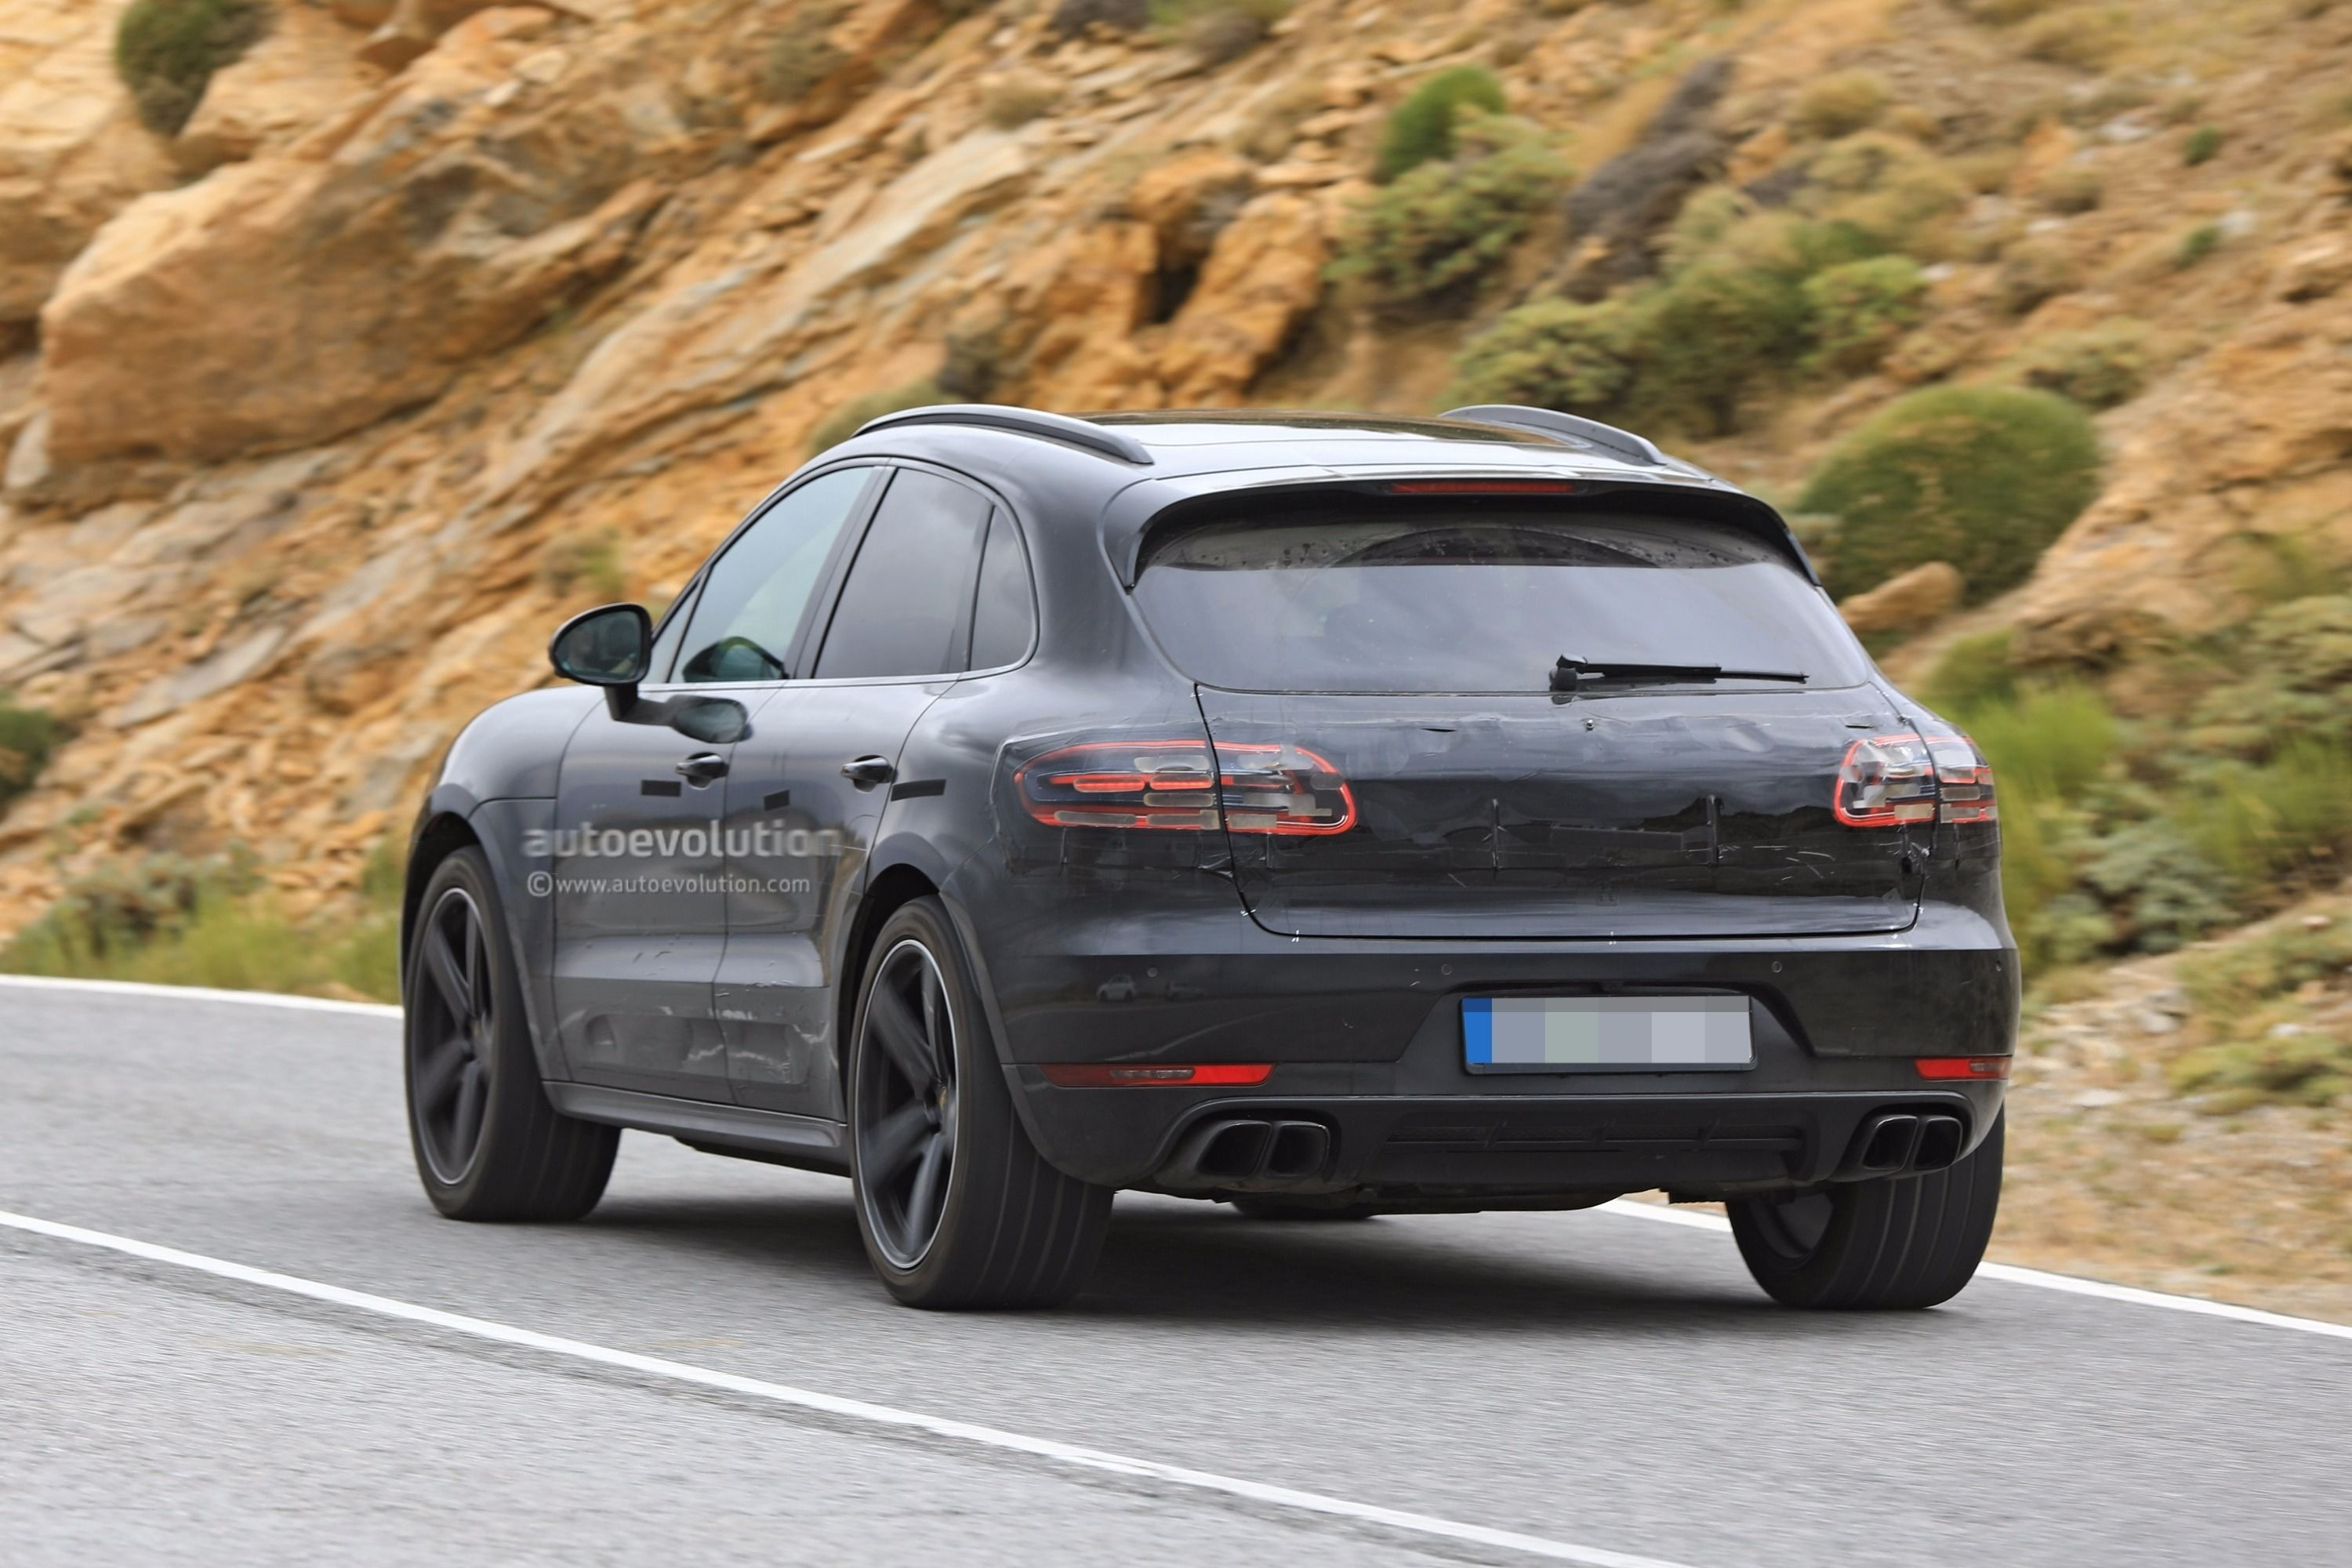 Spyshots 2019 Porsche Macan Prototype Poses For The Camera